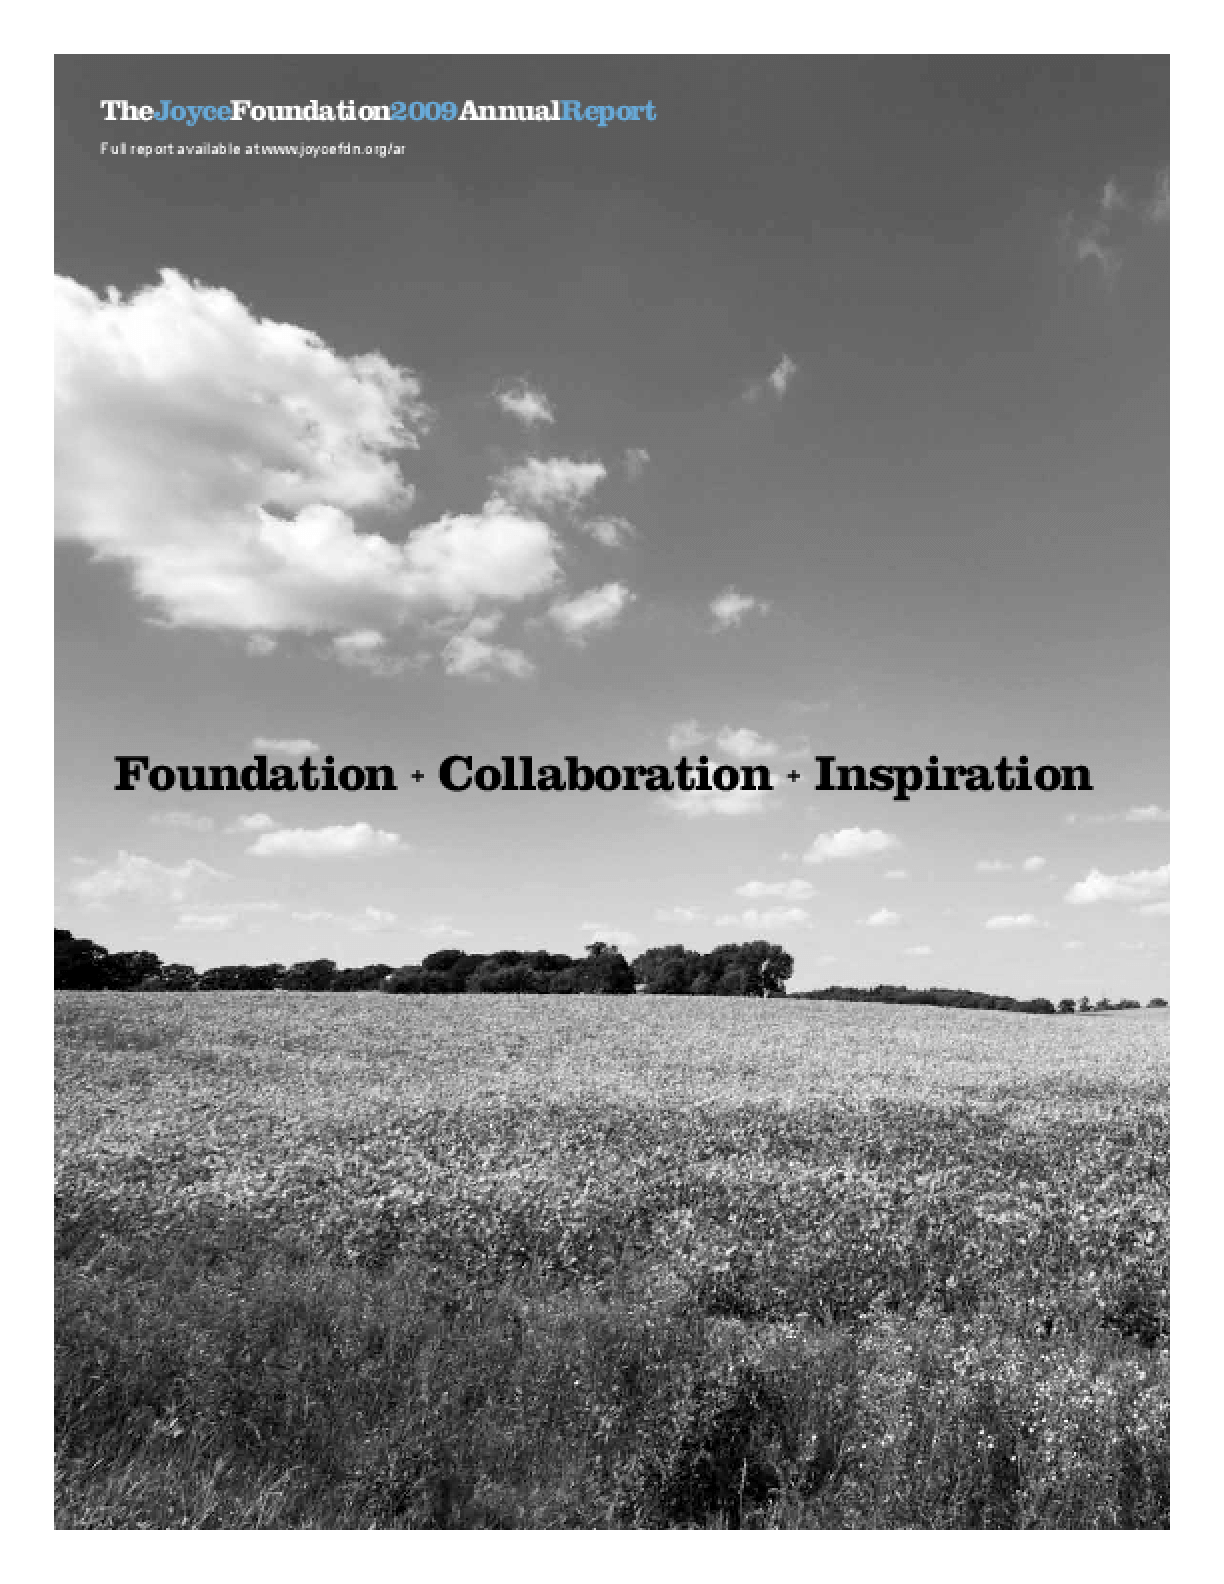 Joyce Foundation - 2009 Annual Report: Foundation + Collaboration + Inspiration